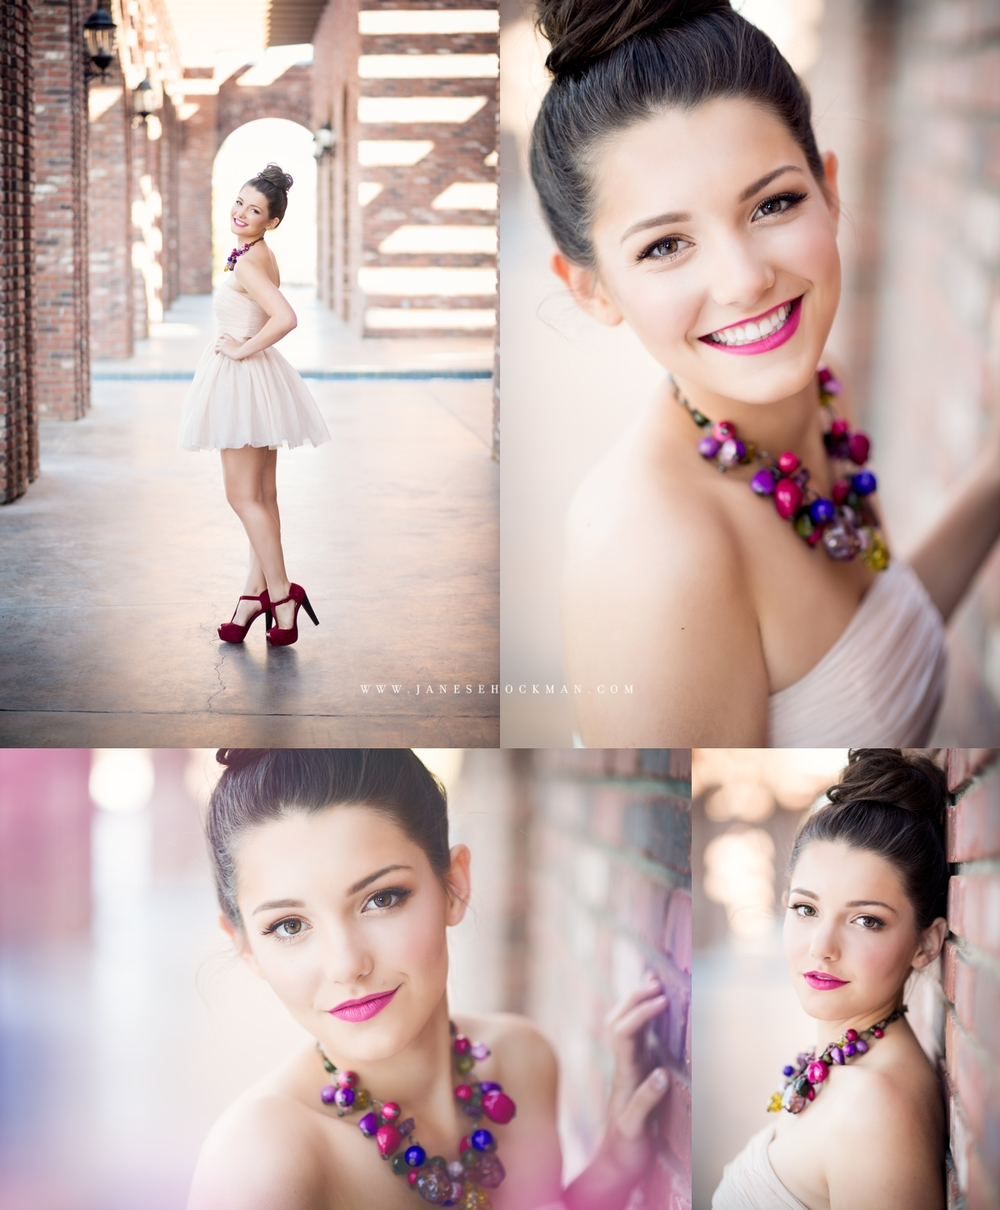 Alyssa Blog Post 1 San luis obispo senior portraits california janese hockman photography .jpg